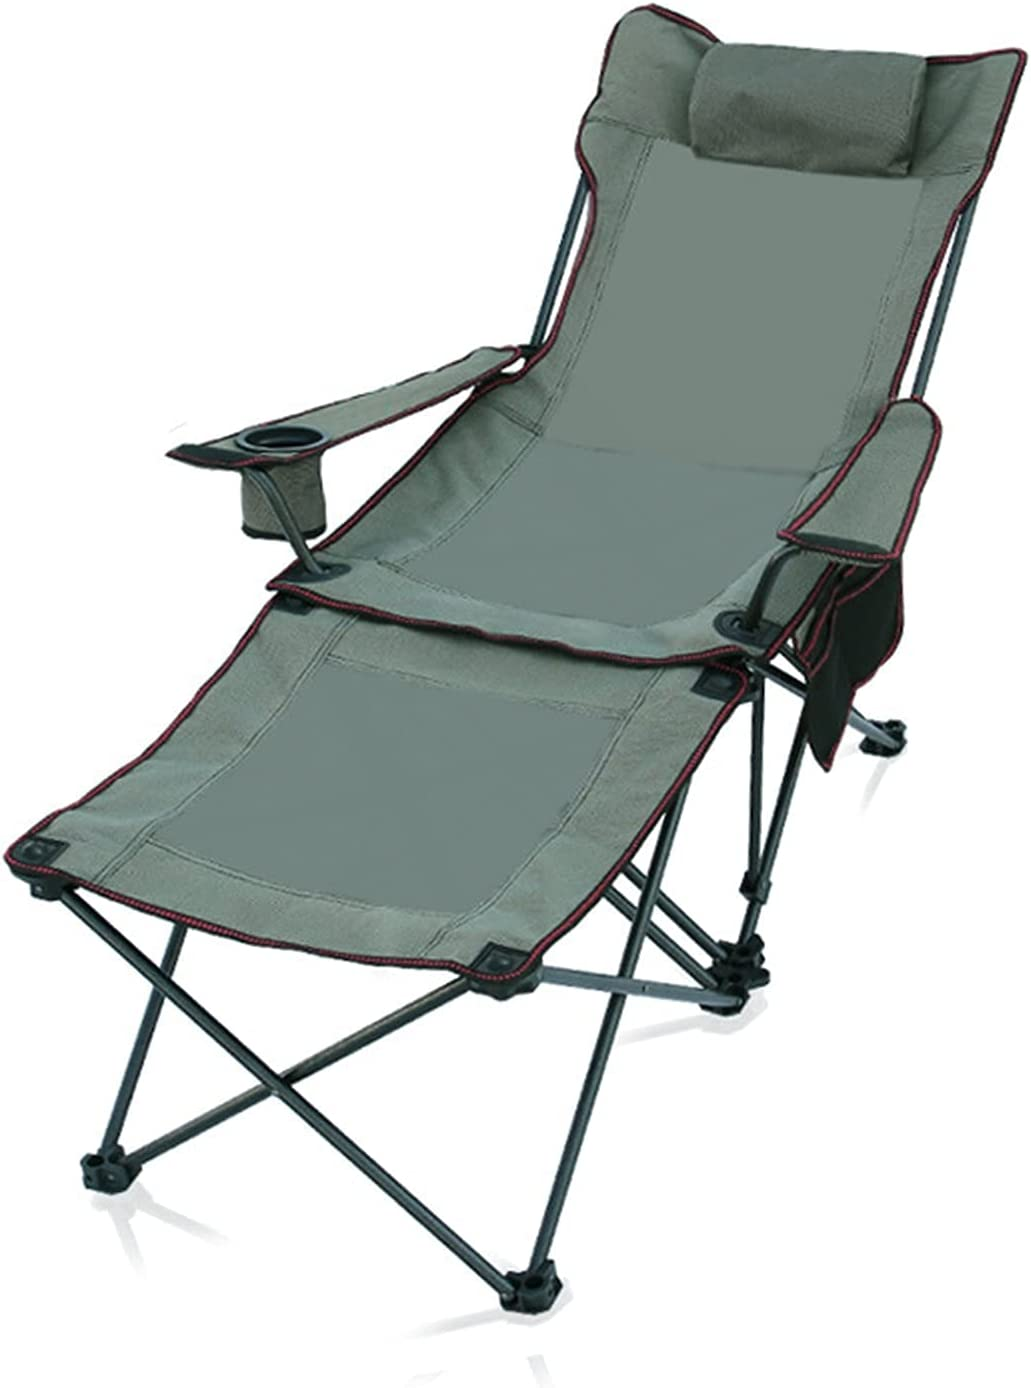 Compact Outdoor Chair 3 Folding Now on sale Max 88% OFF iBeach Lightweight Portab